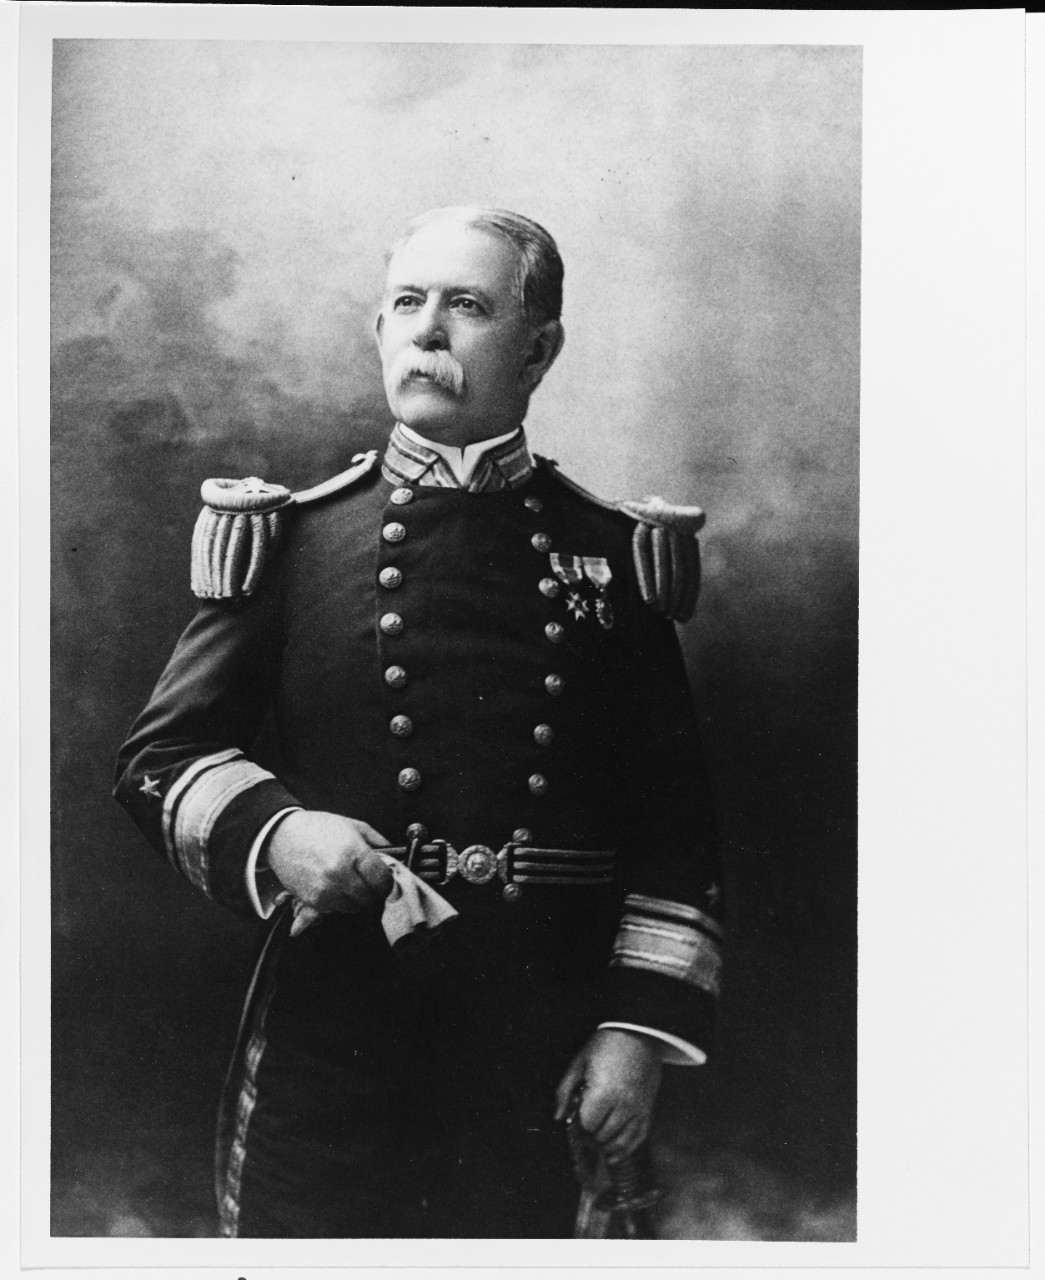 Rear Admiral Charles S. Cotton, USN